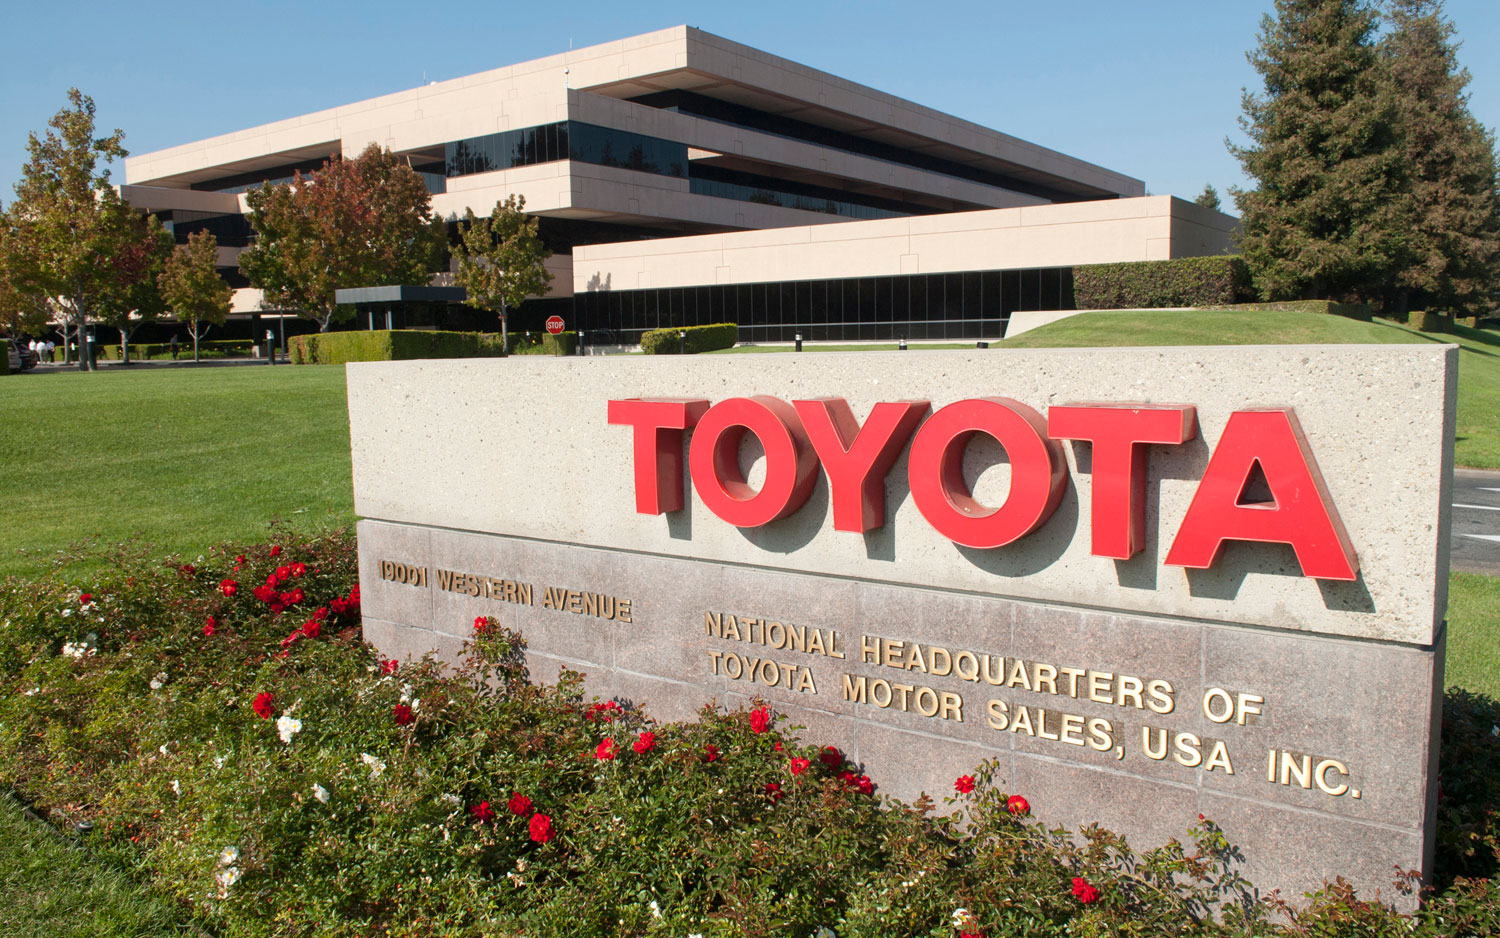 Toyota headquarter address and customer service contact details